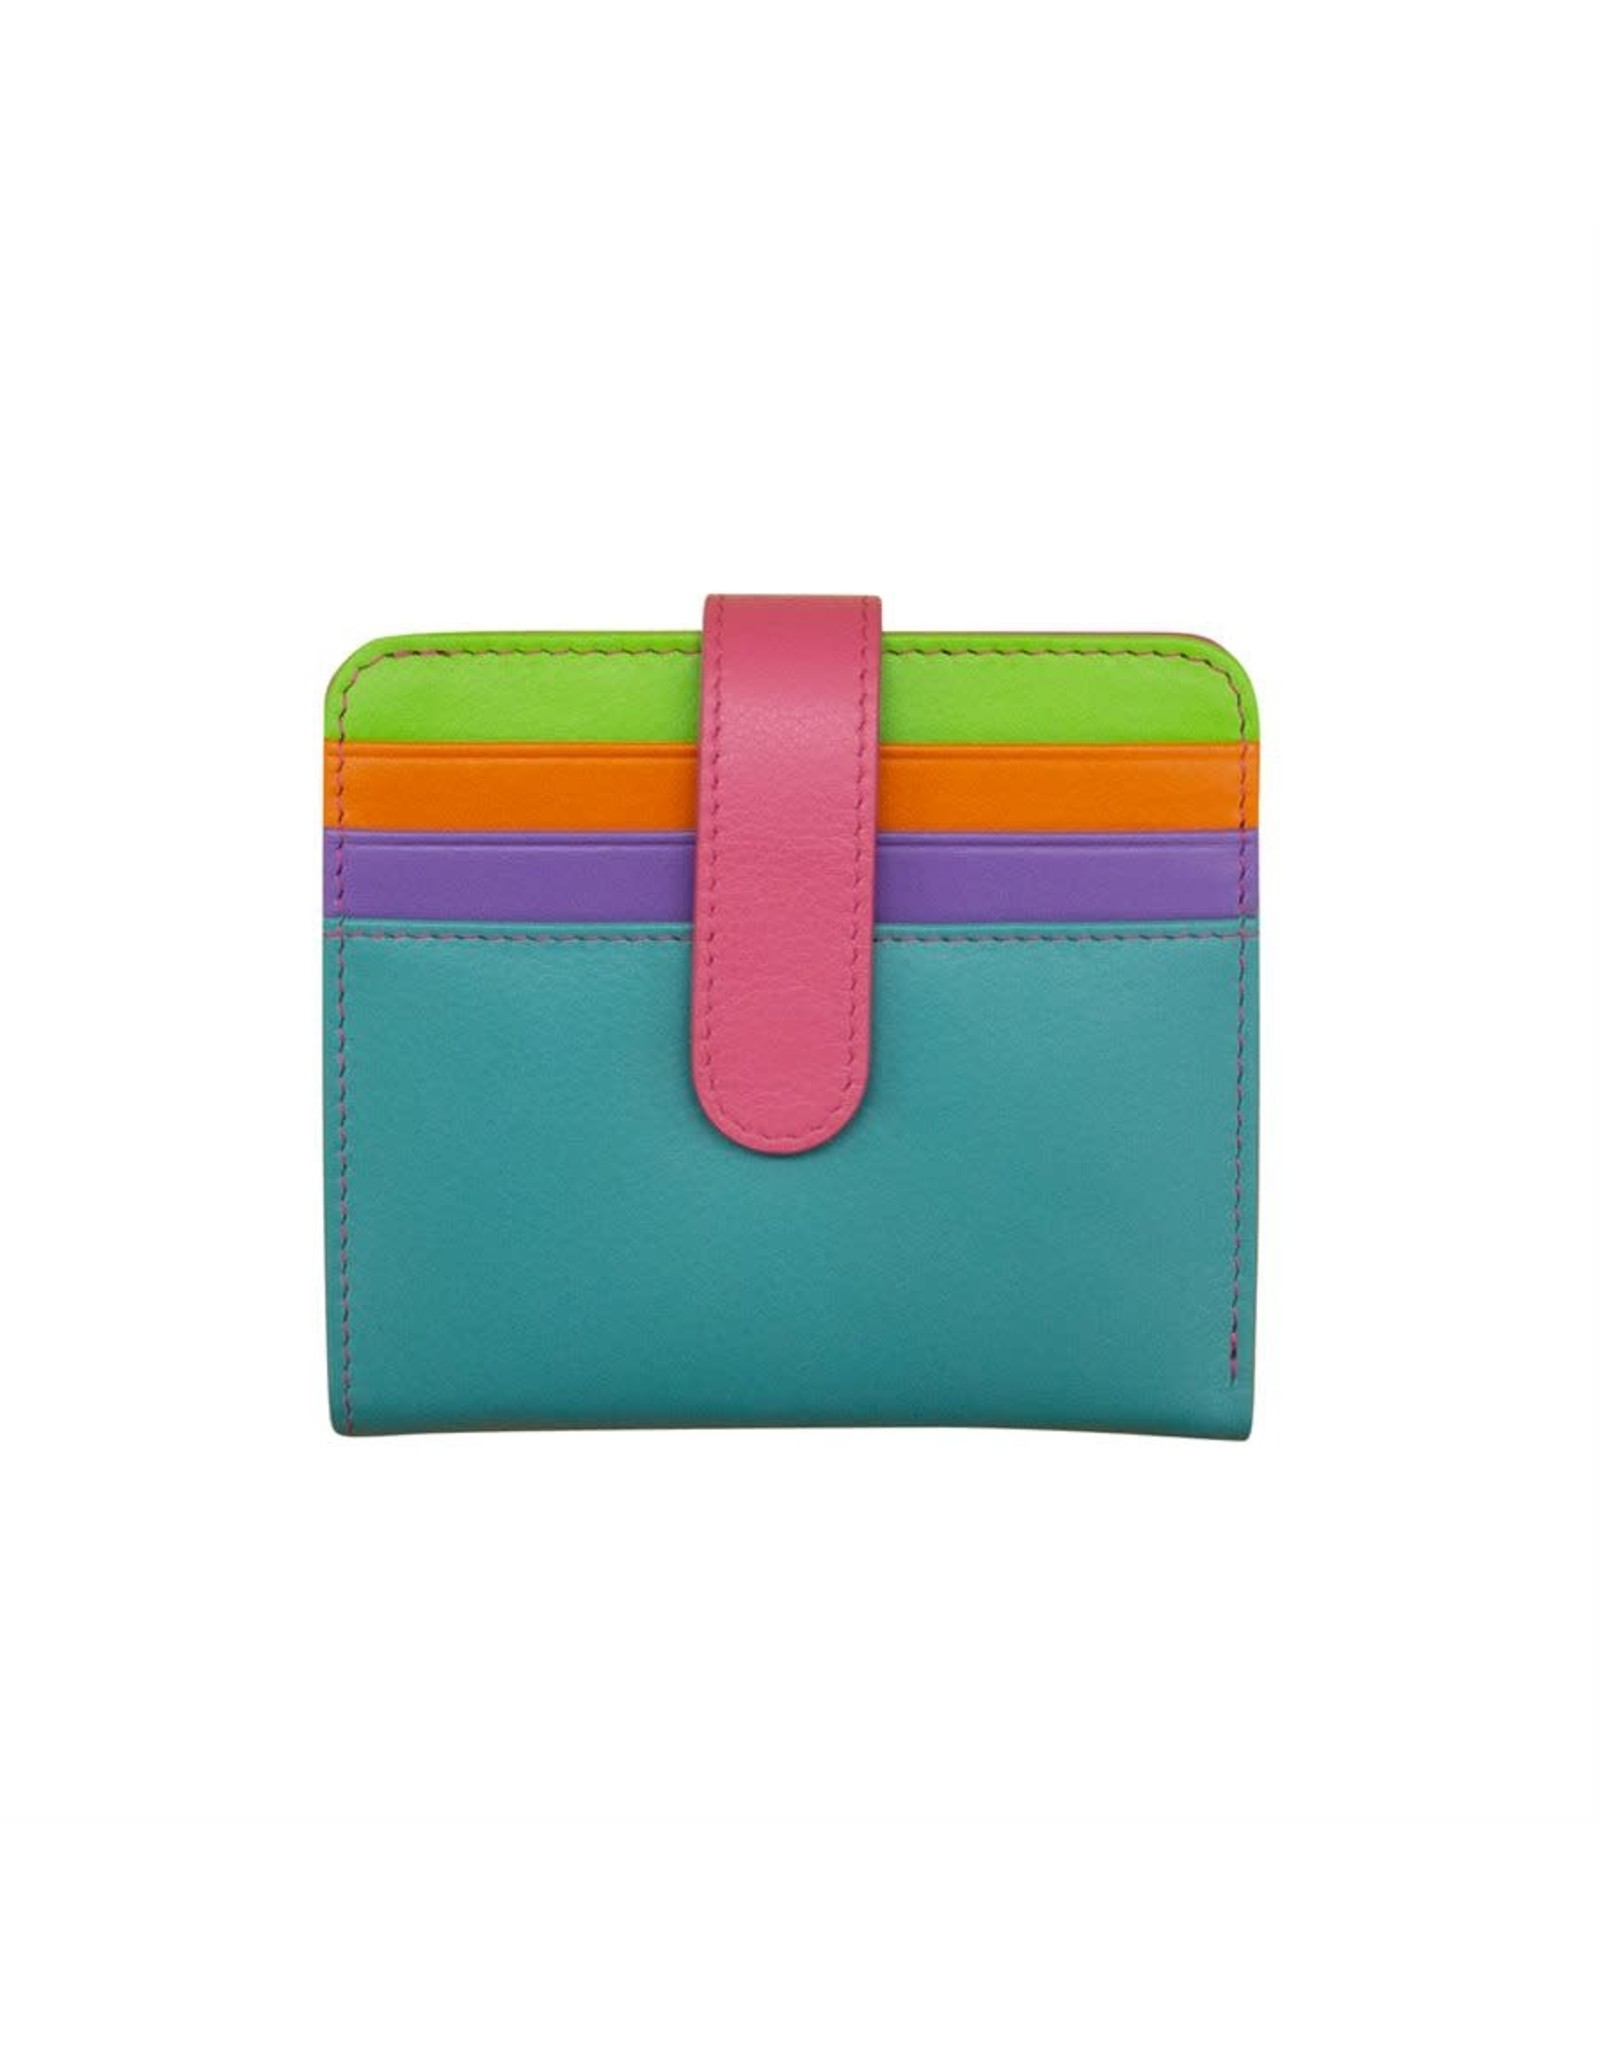 Leather Handbags and Accessories 7301 Palm Beach - RFID Small Wallet